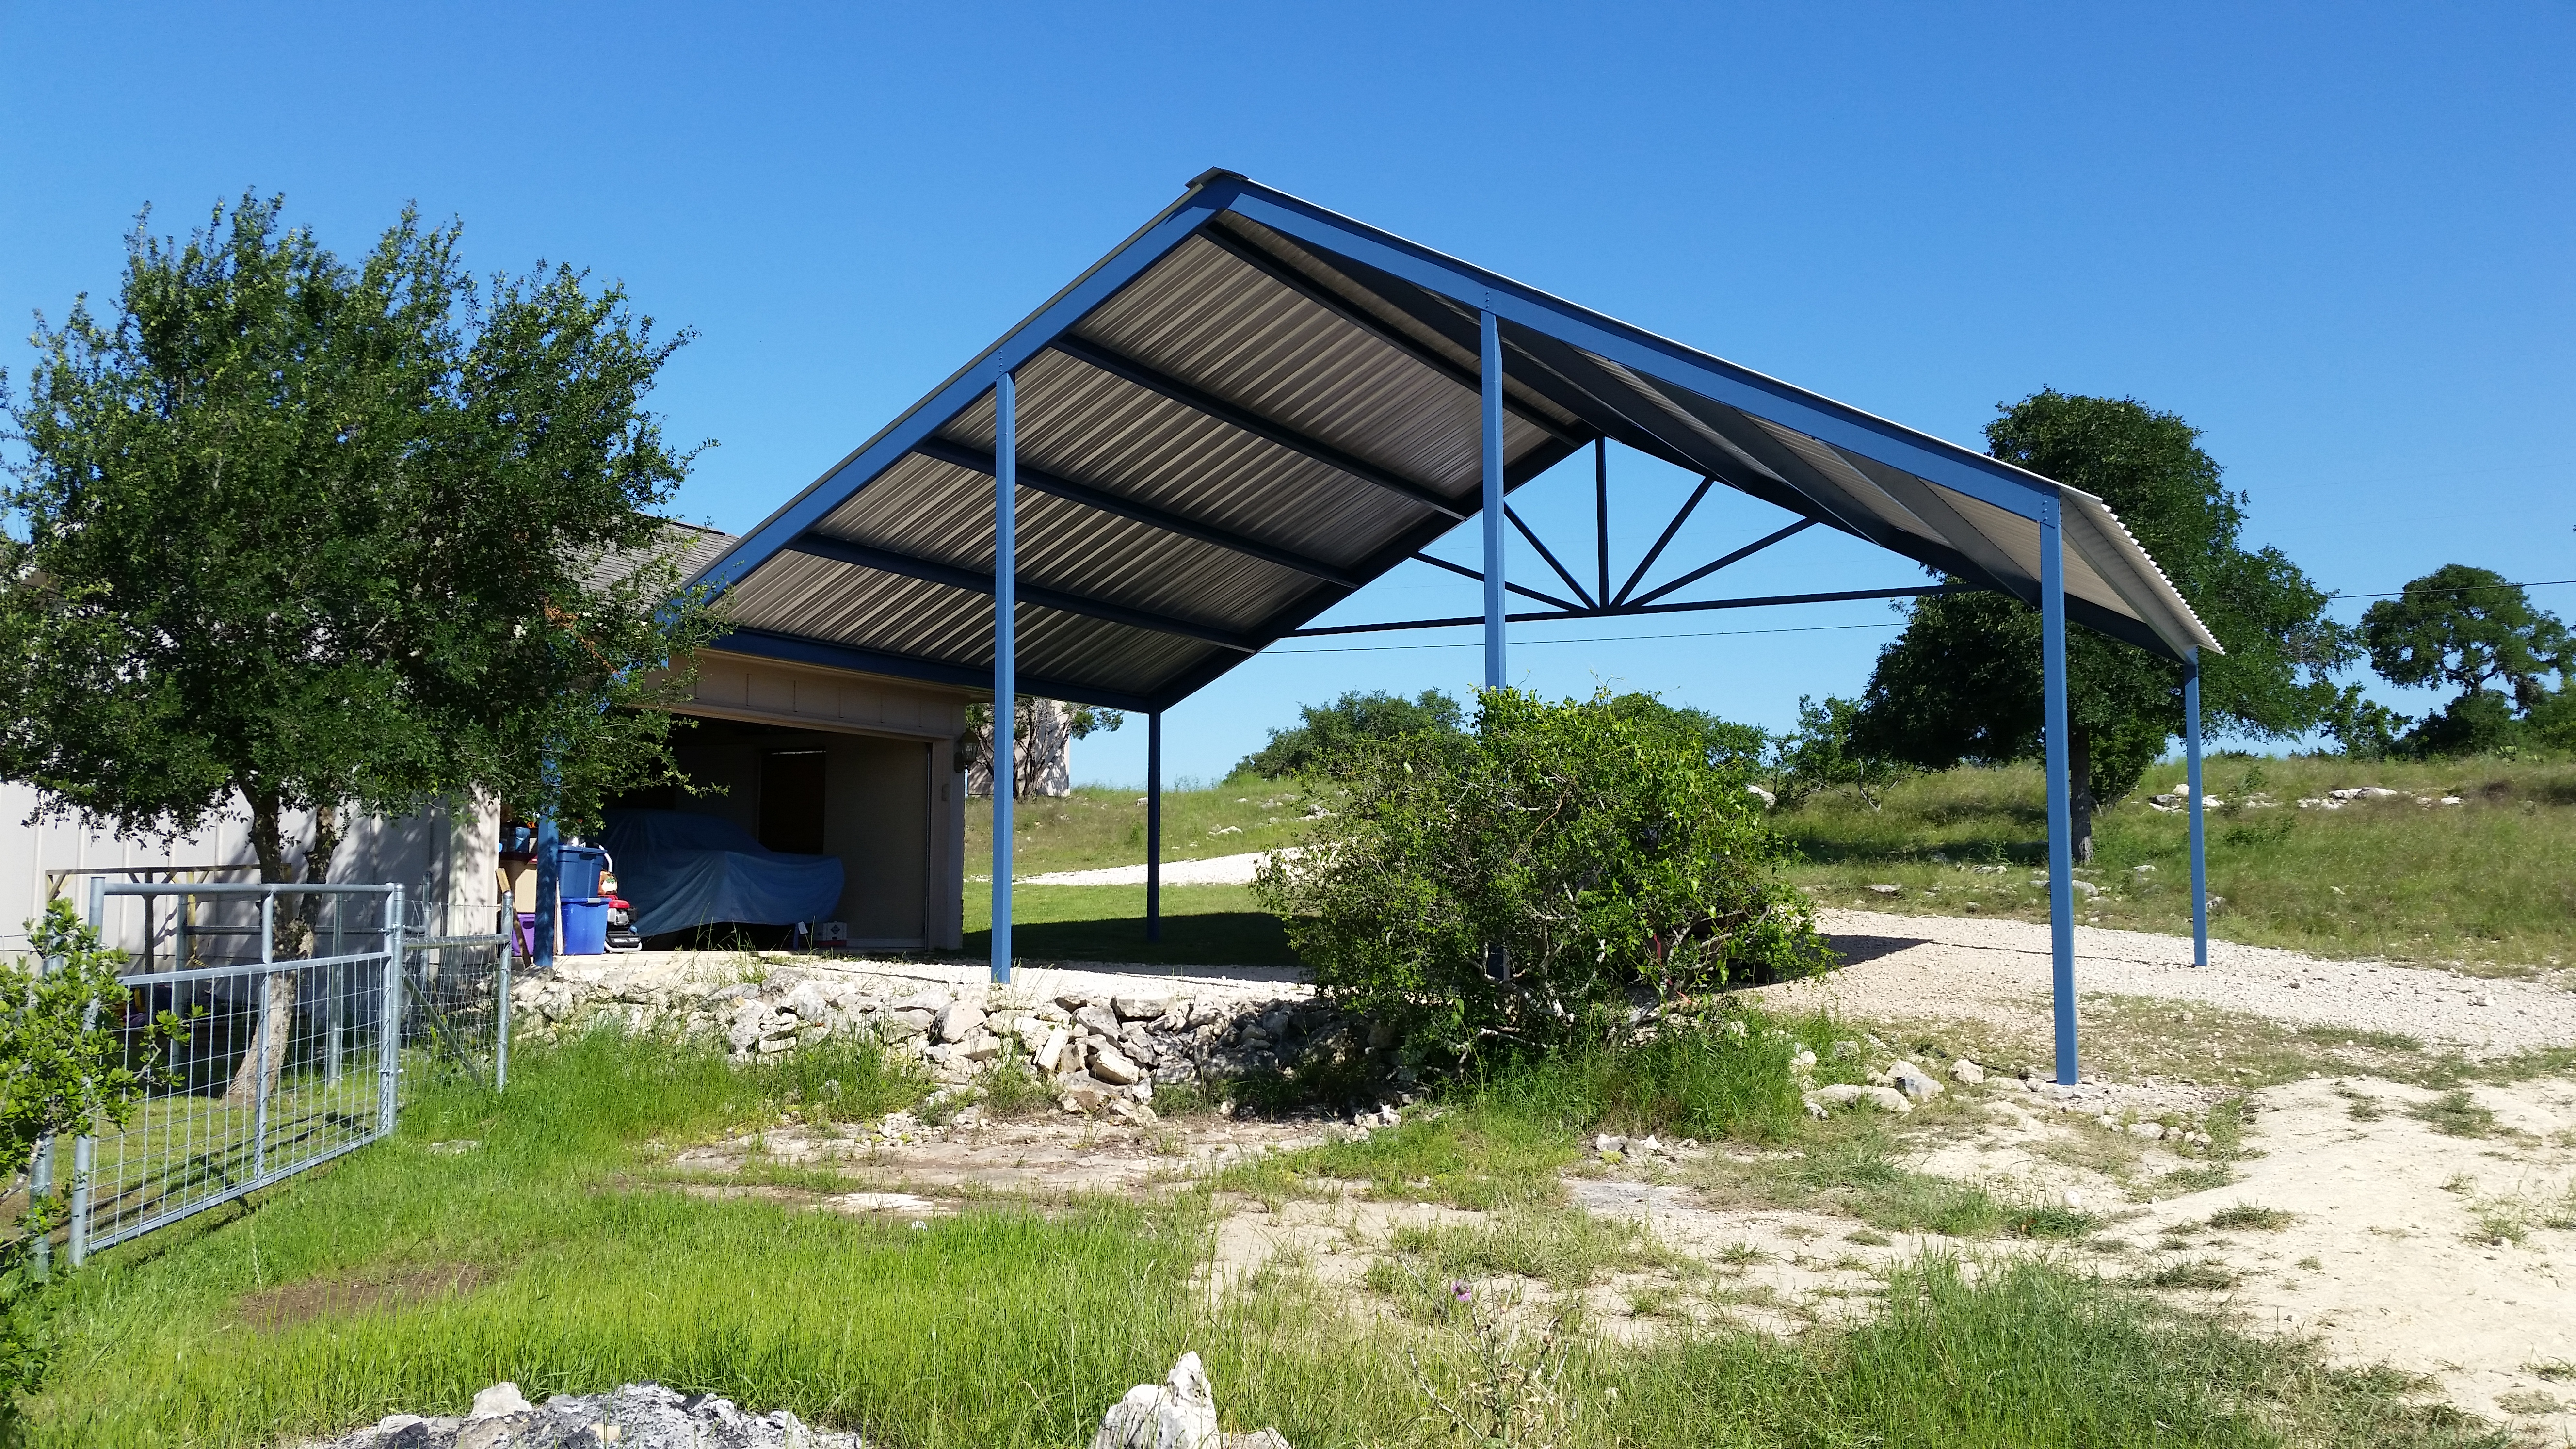 Custom Gabled Carport With Sunburst Boerne Tx Carport